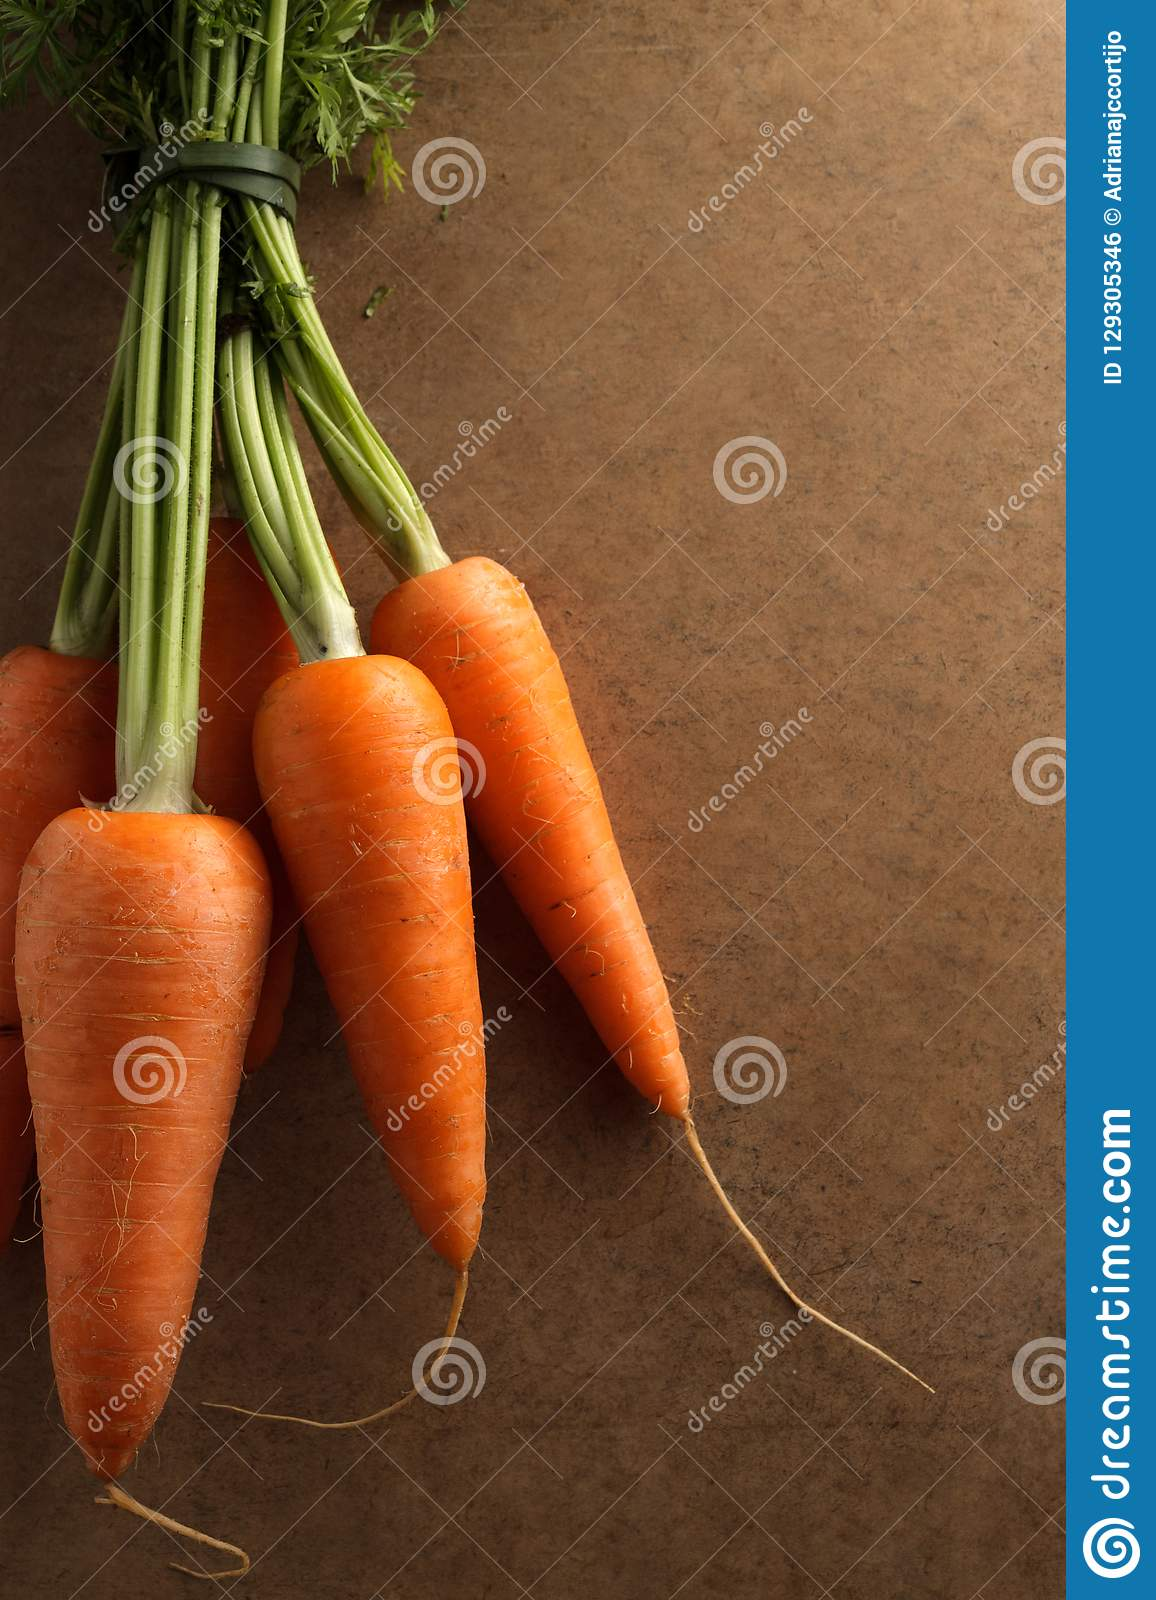 A bunch of fresh carrots.